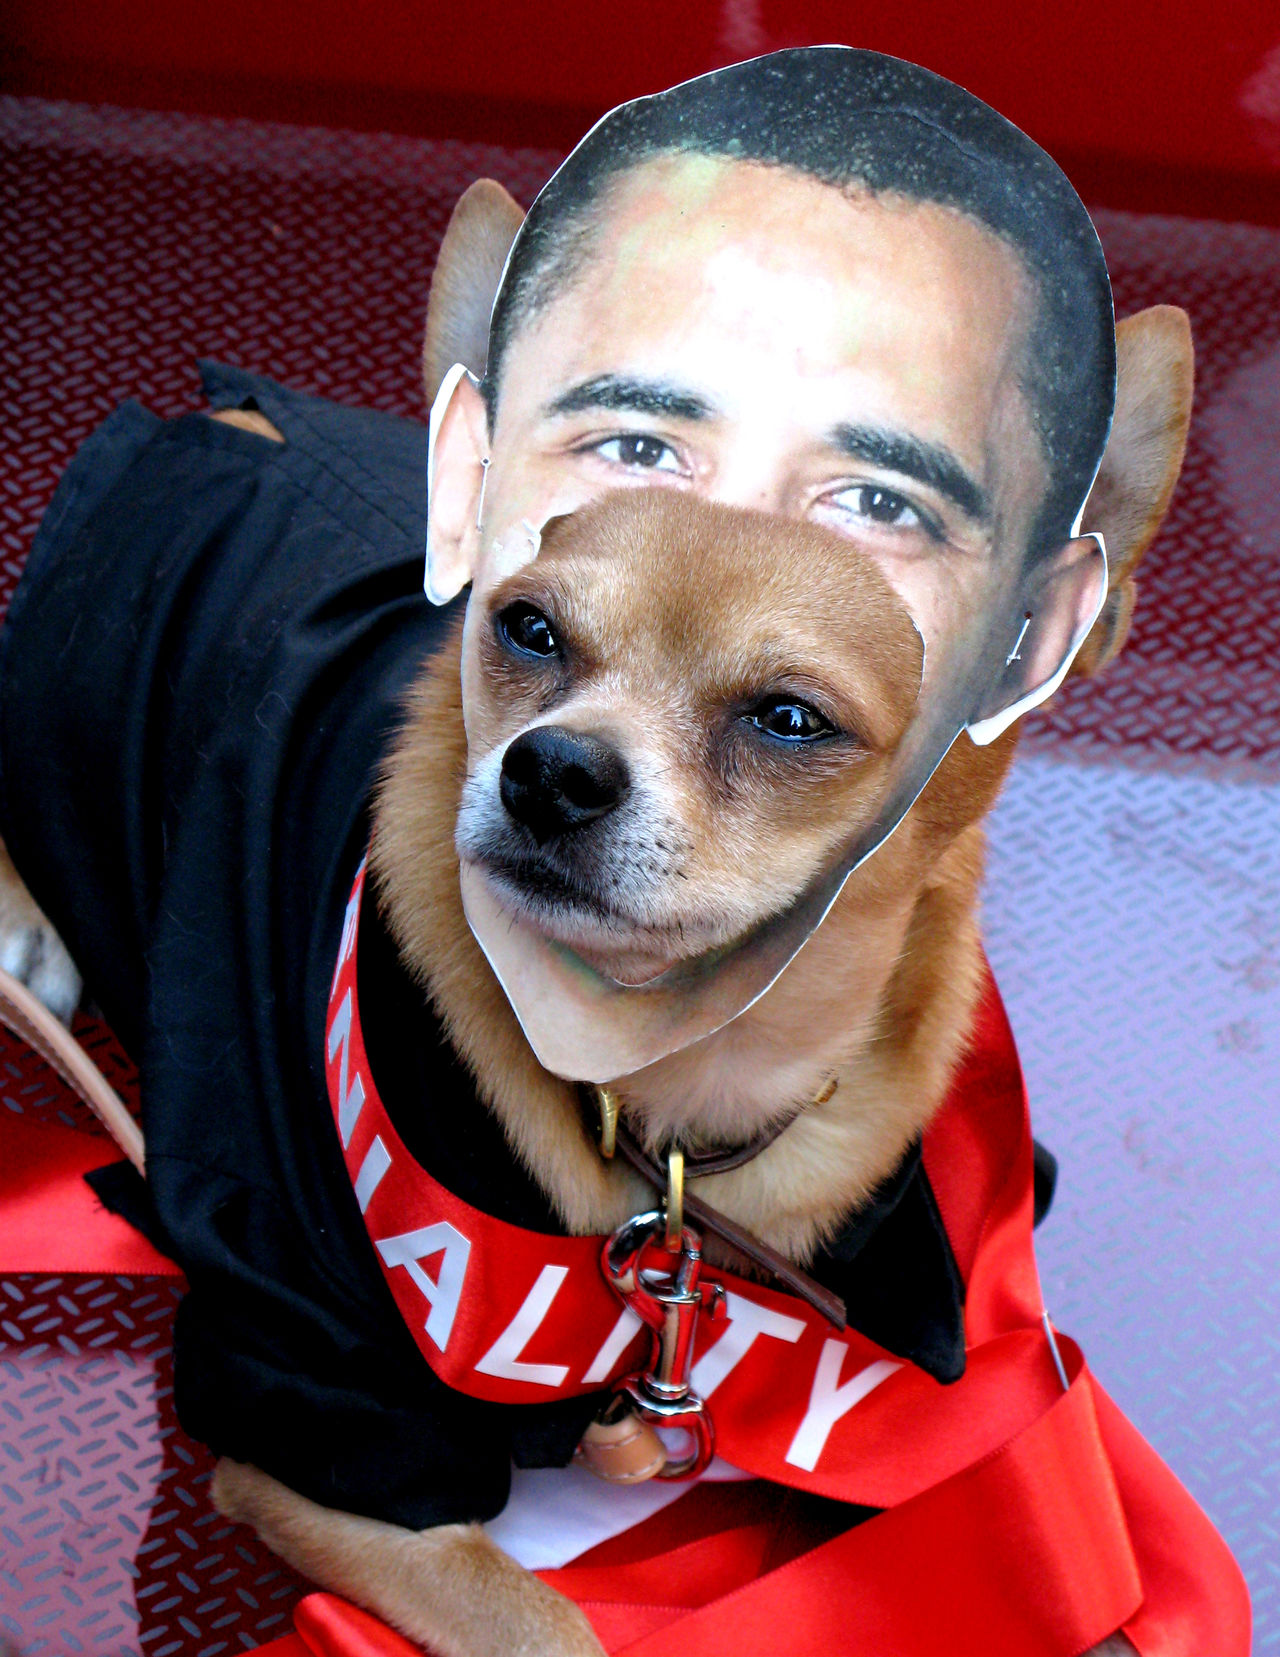 Animal Themes Cheerful Close-up Day Dog Domestic Animals Indoors  Looking At Camera Mammal Necklace Obama One Animal People Pet Clothing Pets Portrait Sitting Smiling